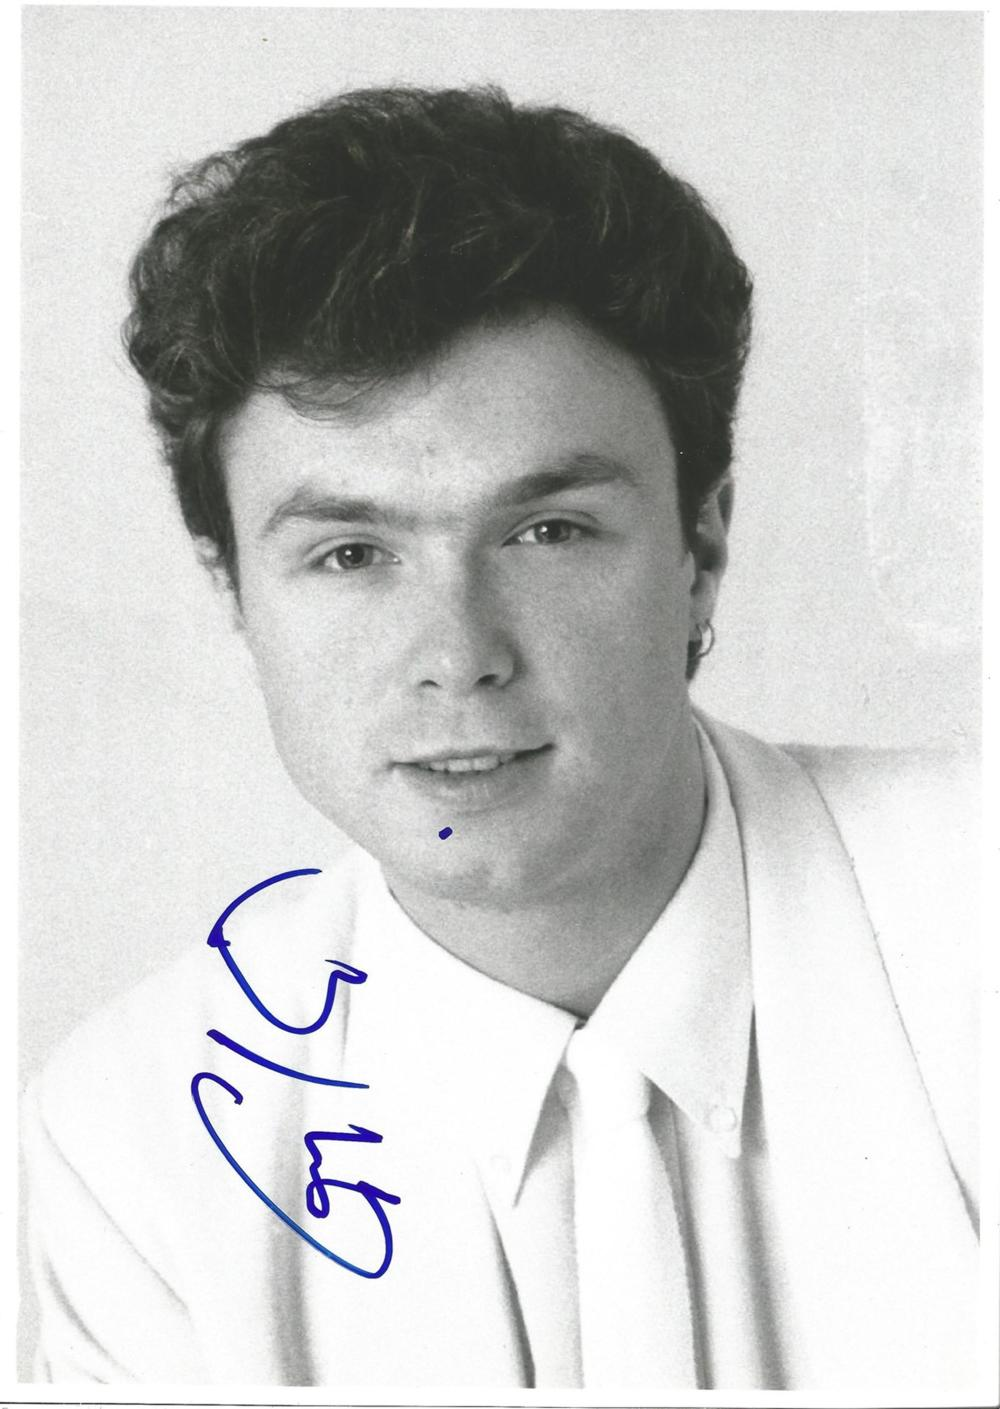 Musician Gary Kemp signed 12x8 black and white photo in excellent condition Gary James Kemp is an